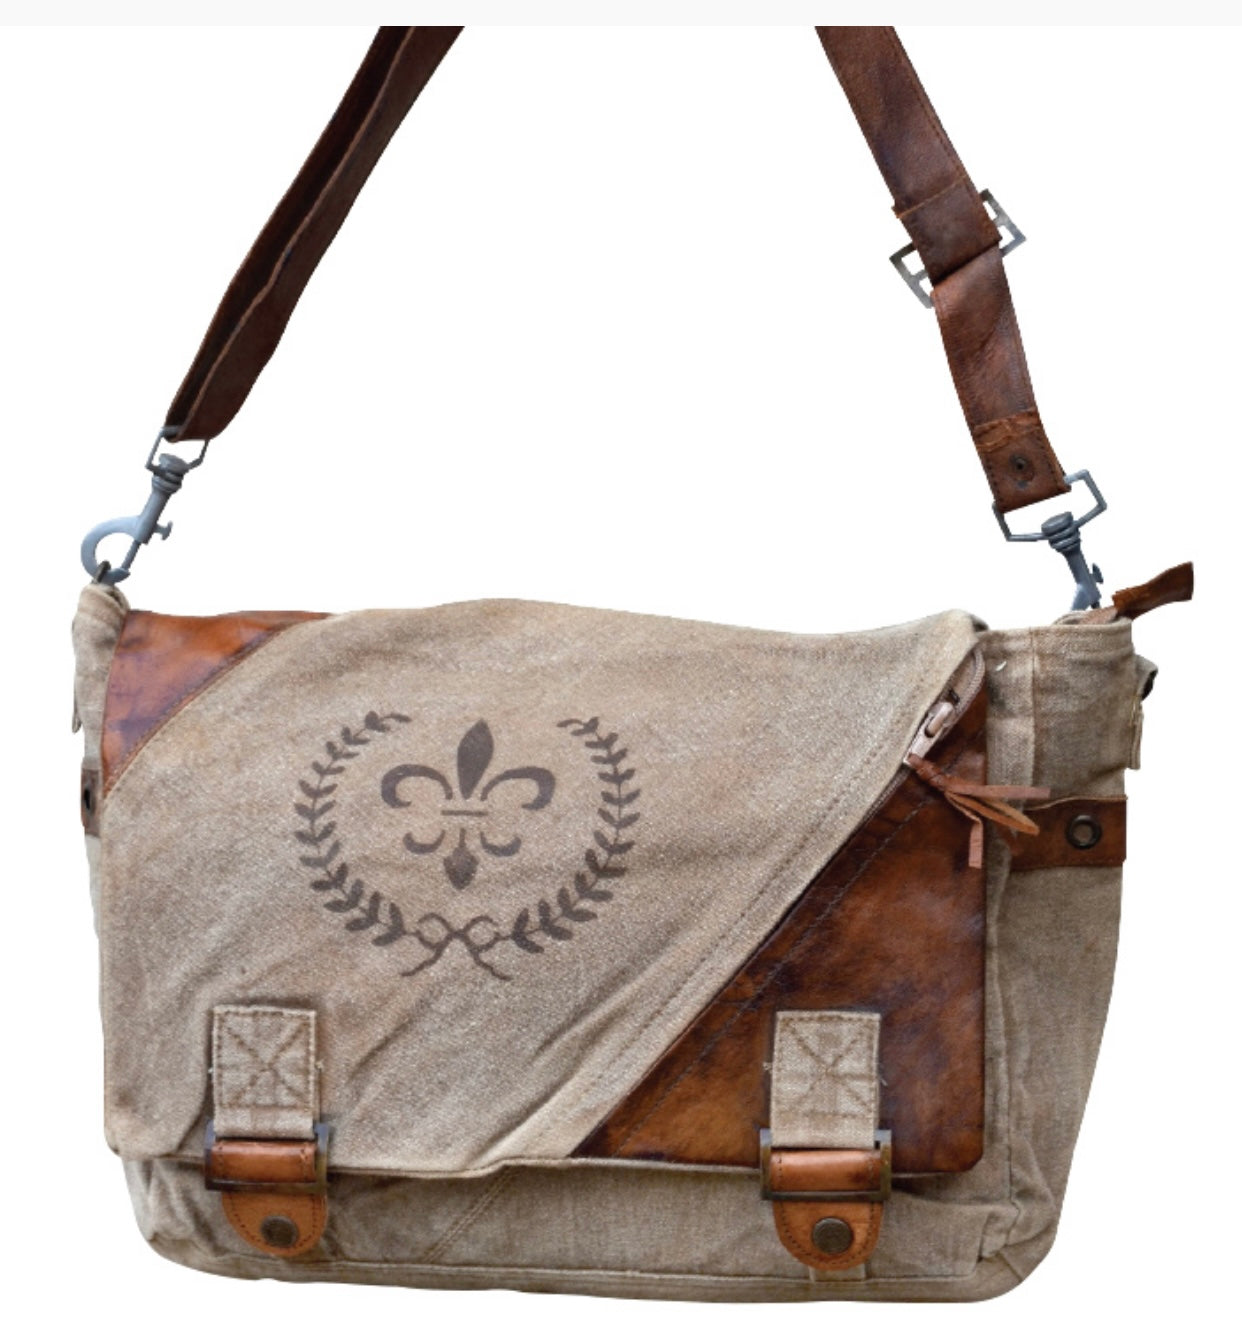 FLEUR DE LIS MESSENGER BAG - The Wall Kids, Inc.